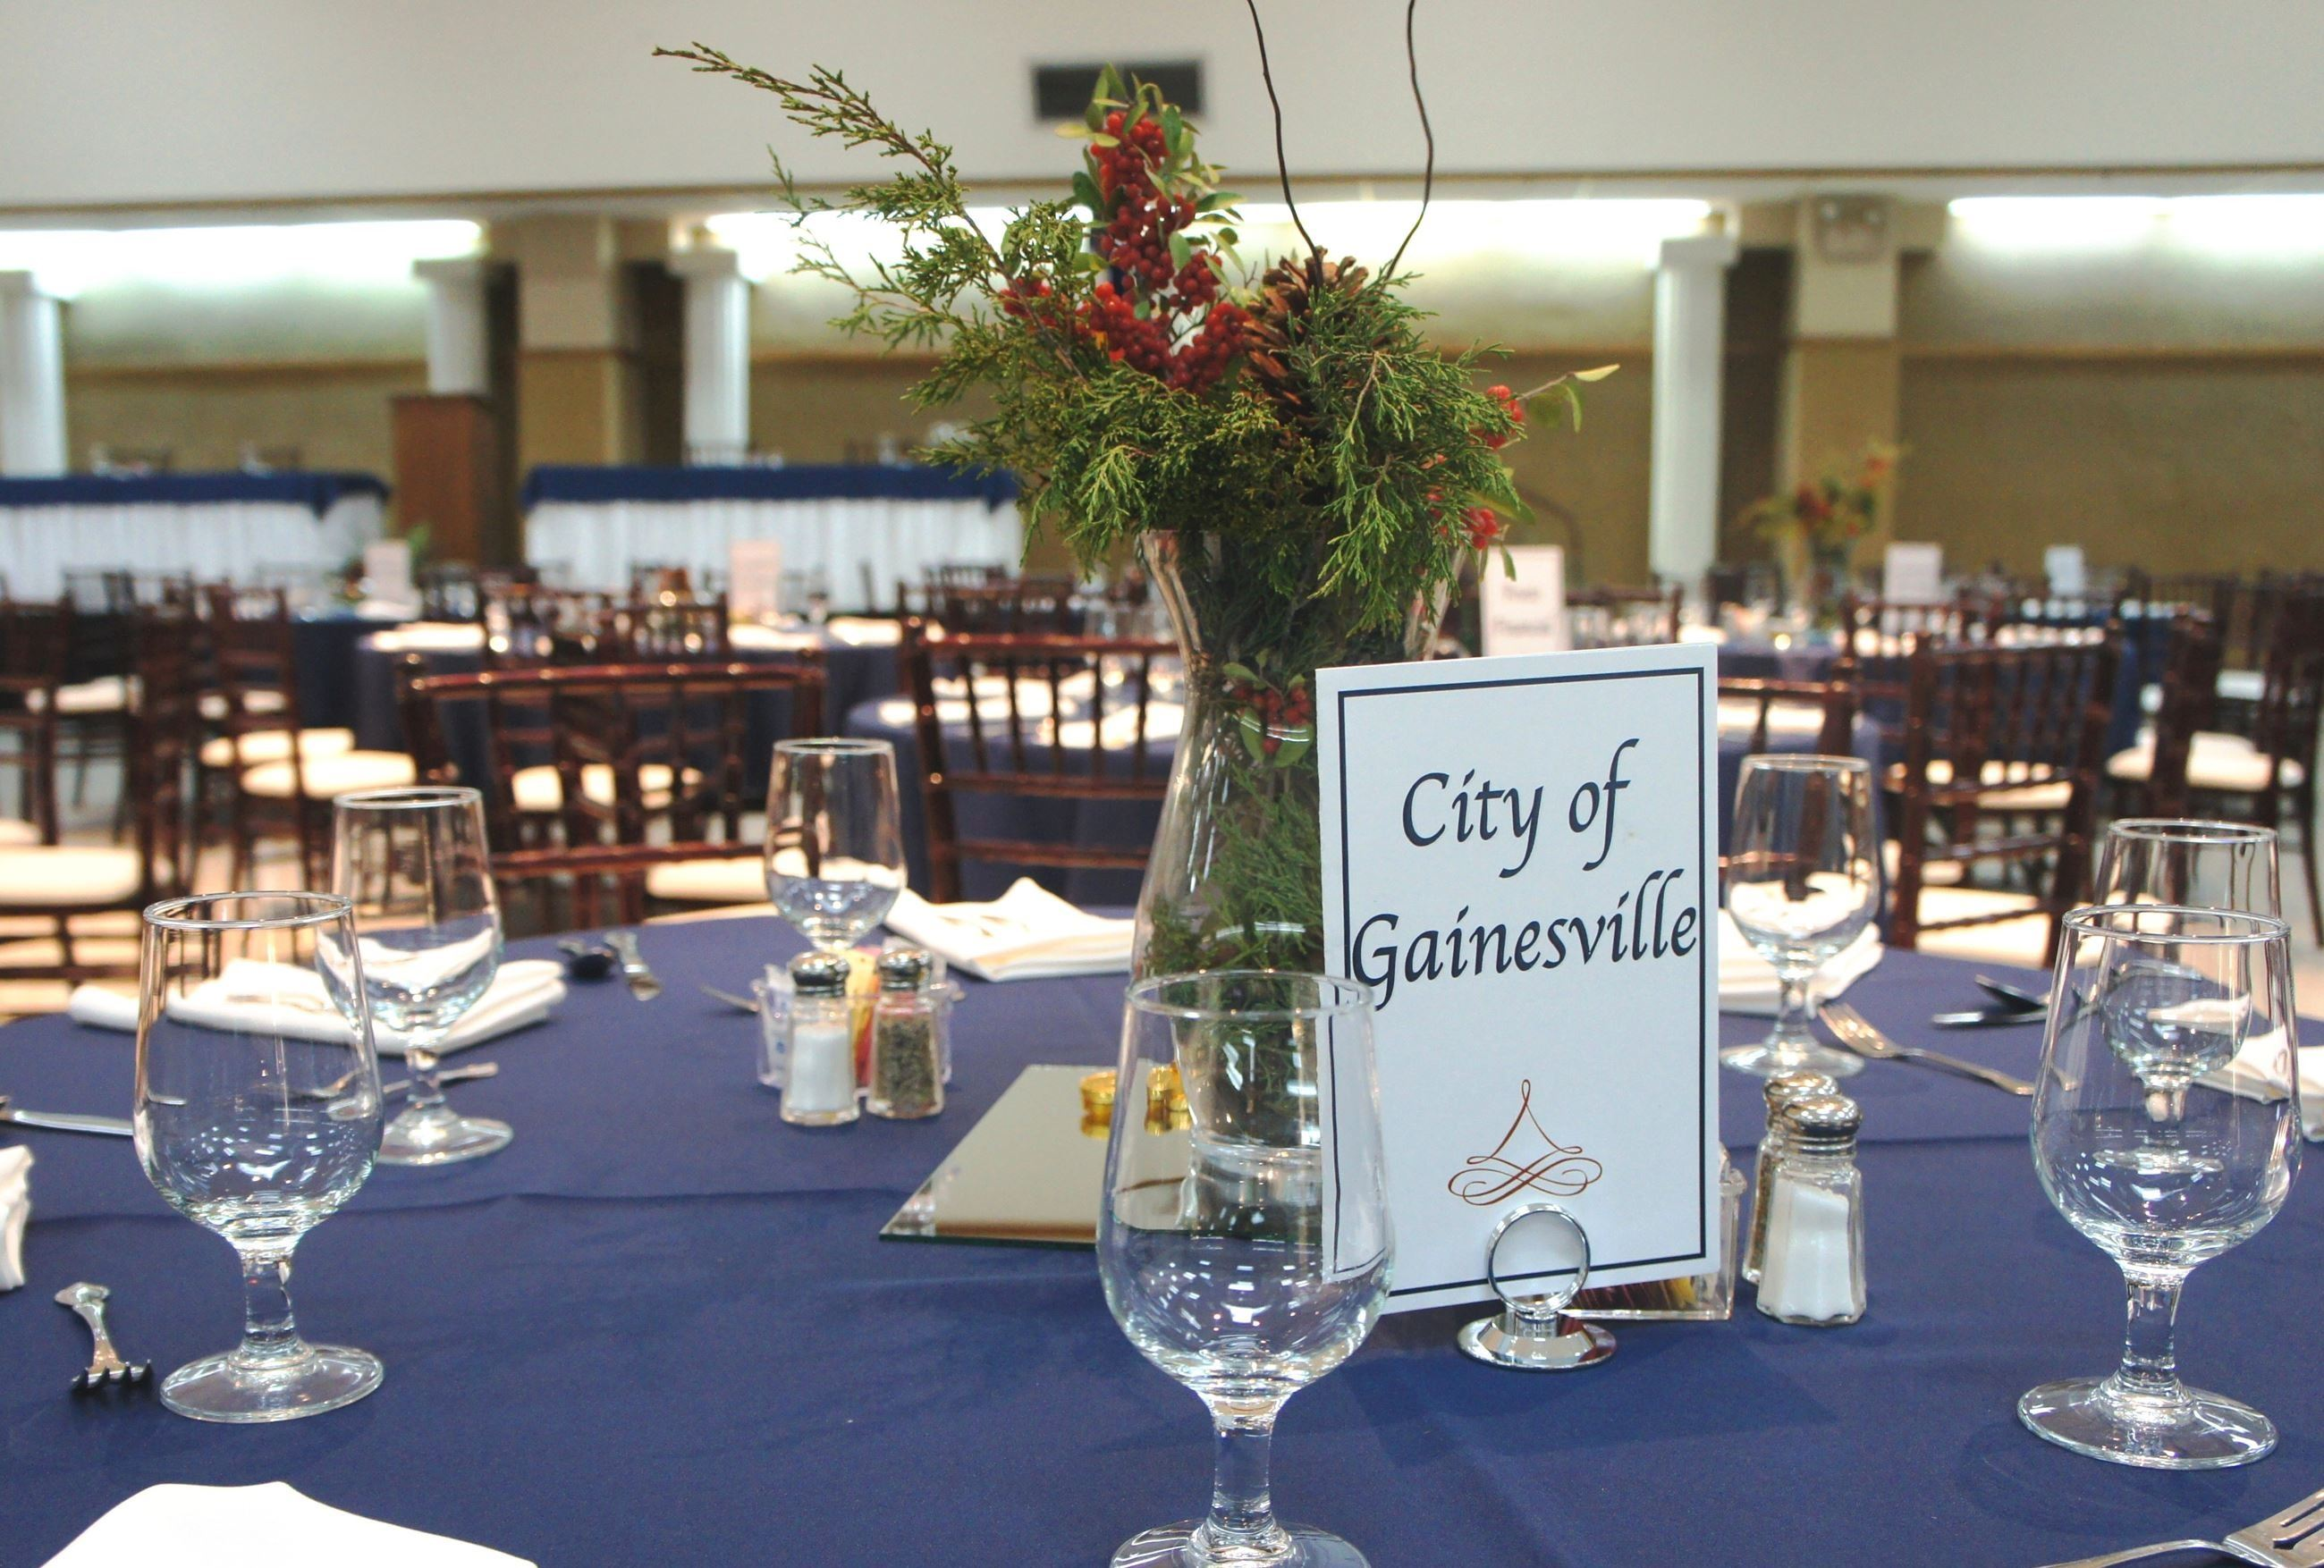 City of Gainesville Decorations